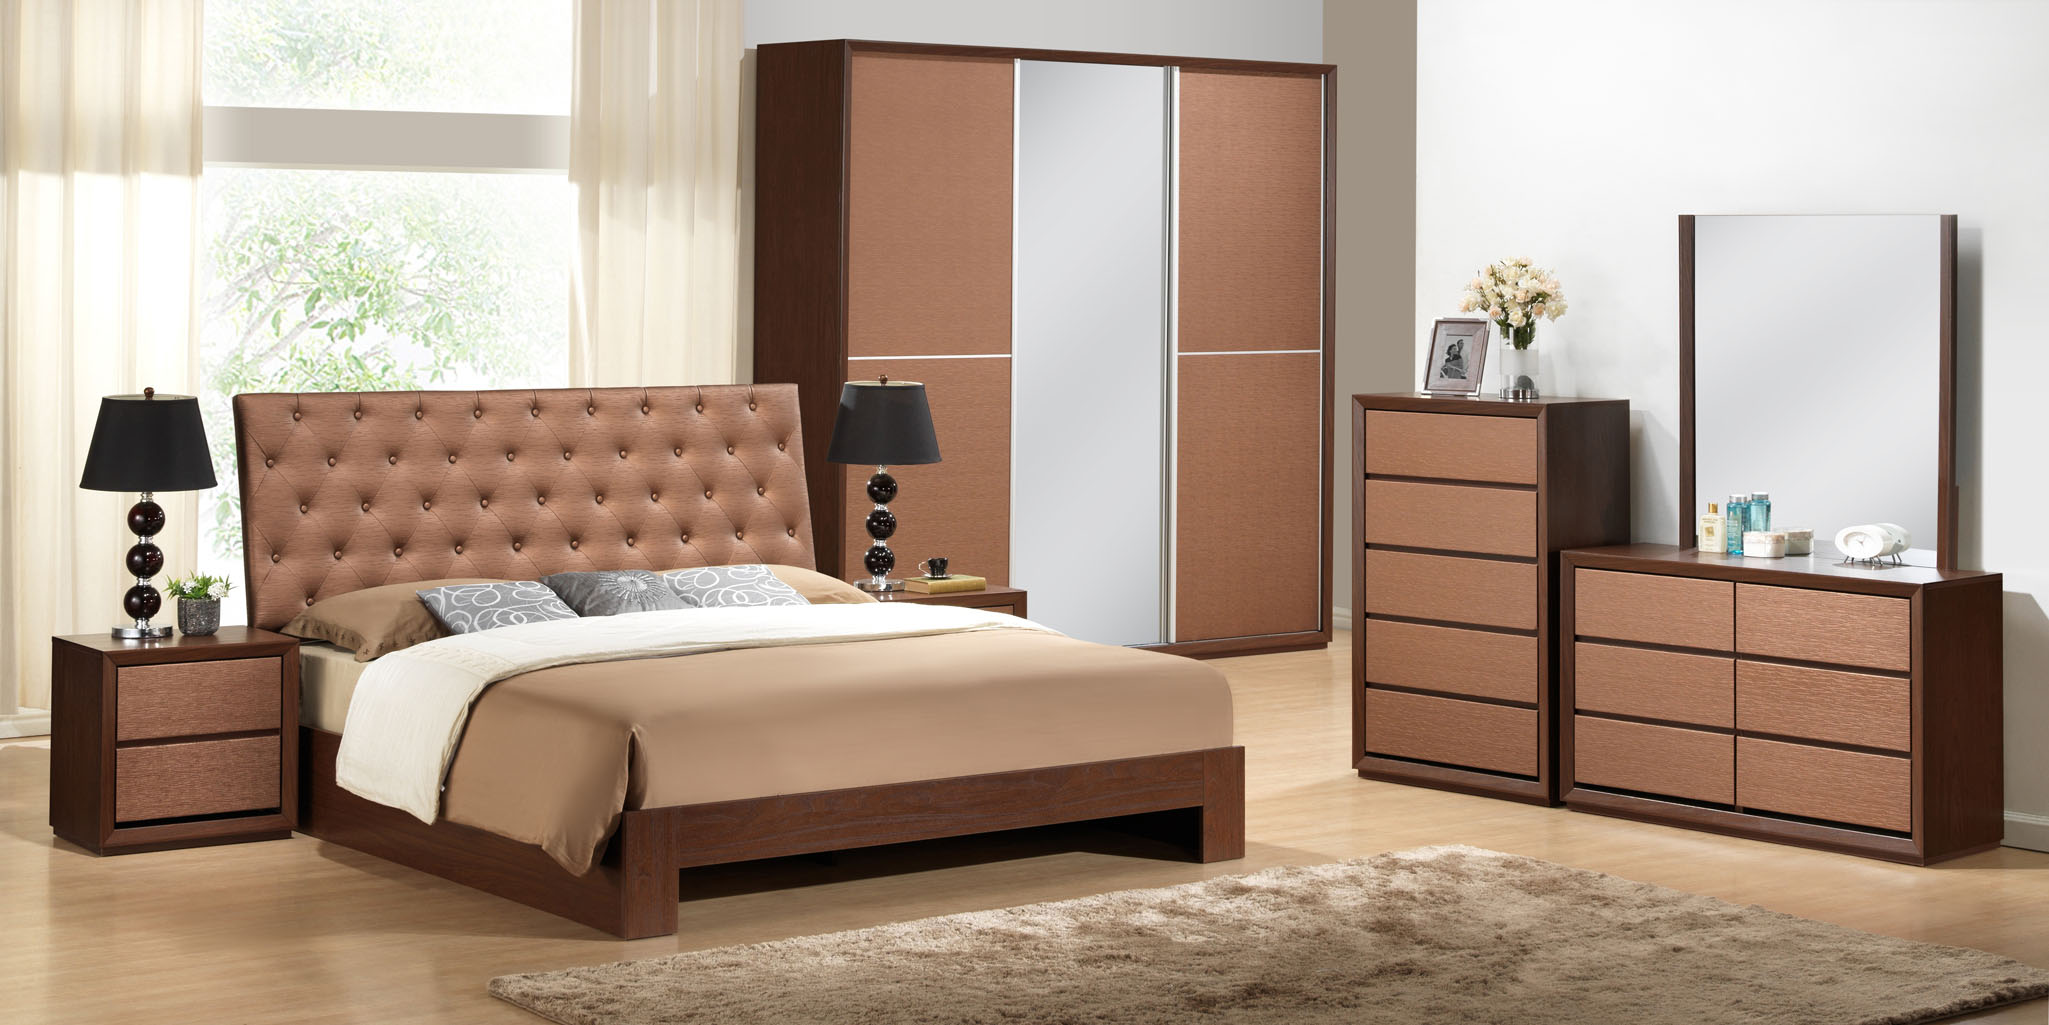 Quincy bedroom set fair production sdn bhd for Bedroom set with bed